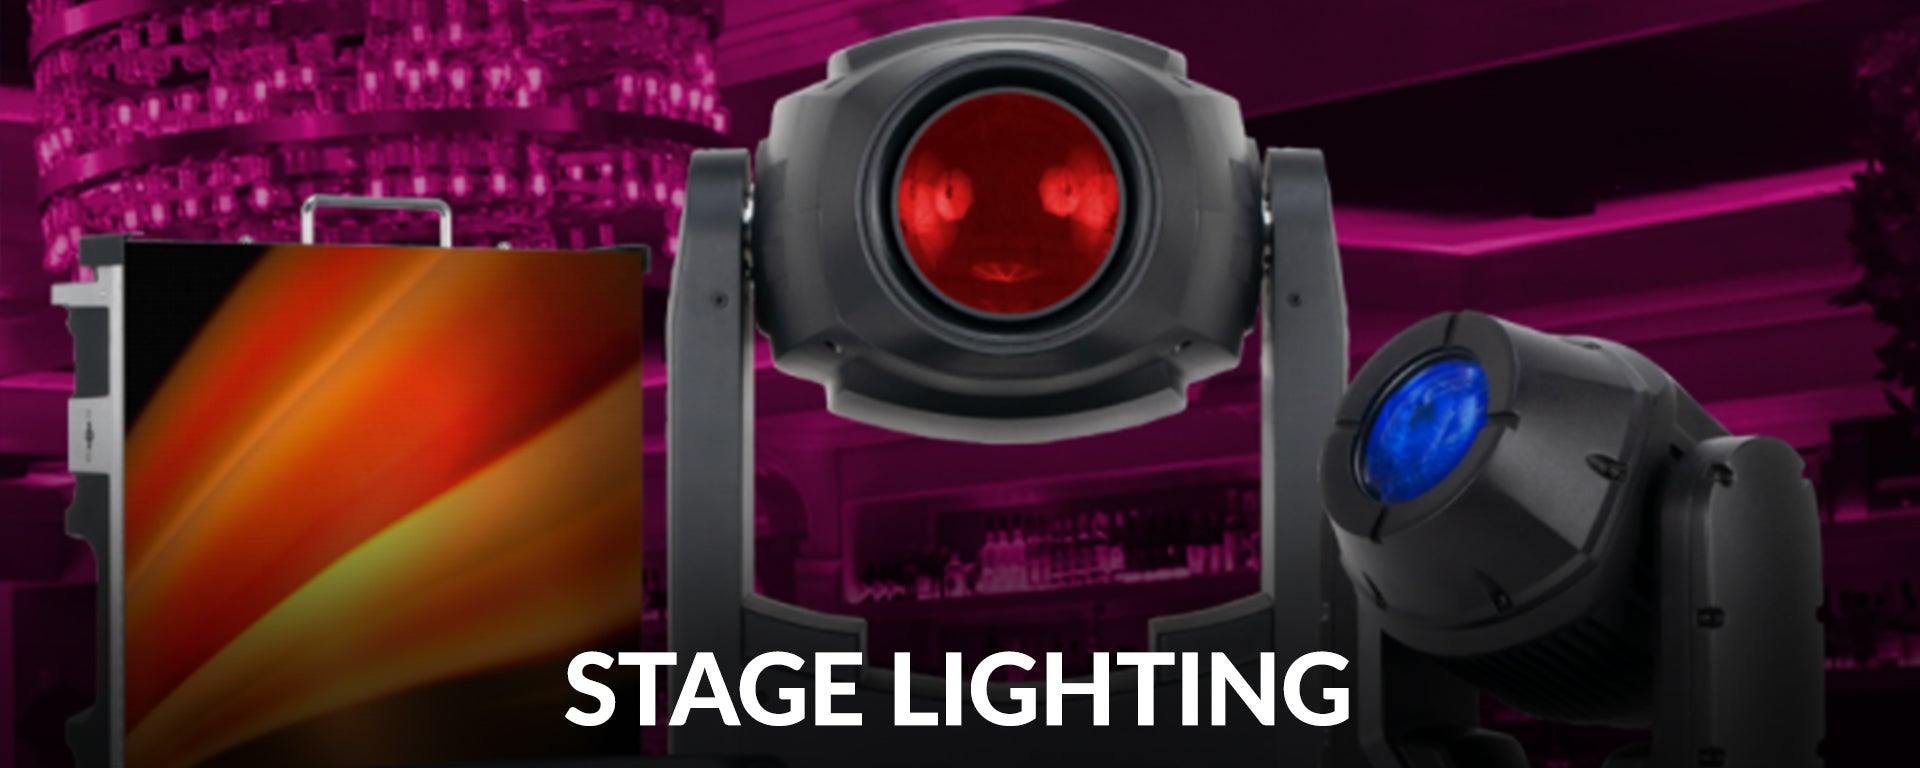 Shop the best selection of Stage Lighting at SamAsh.com and get the lowest price and fast, free shipping.